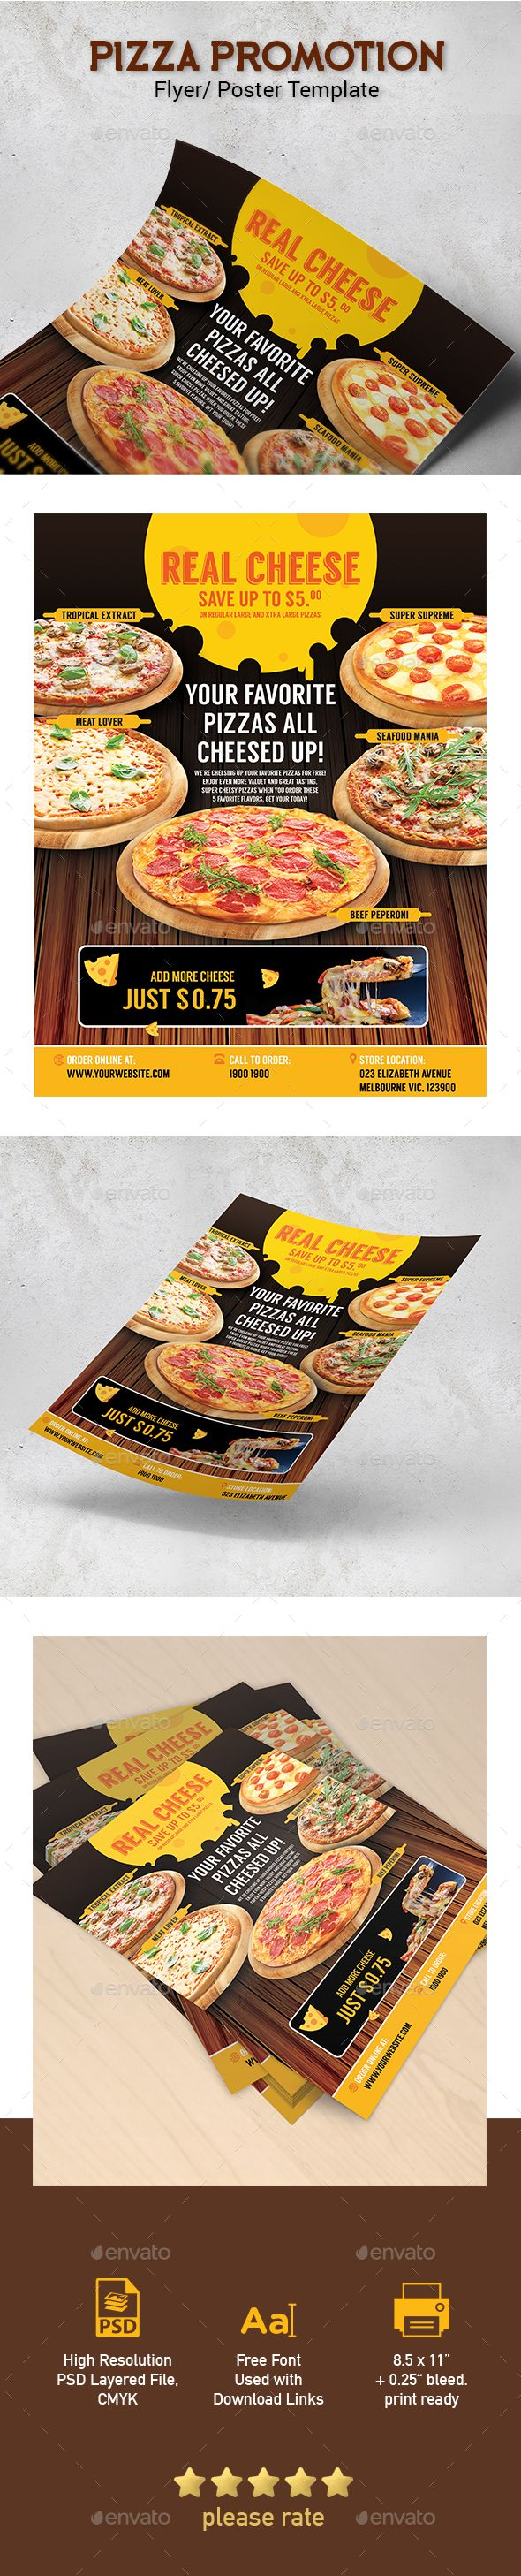 Pizza Menu Restaurant Promotion Template for Poster / Flyer